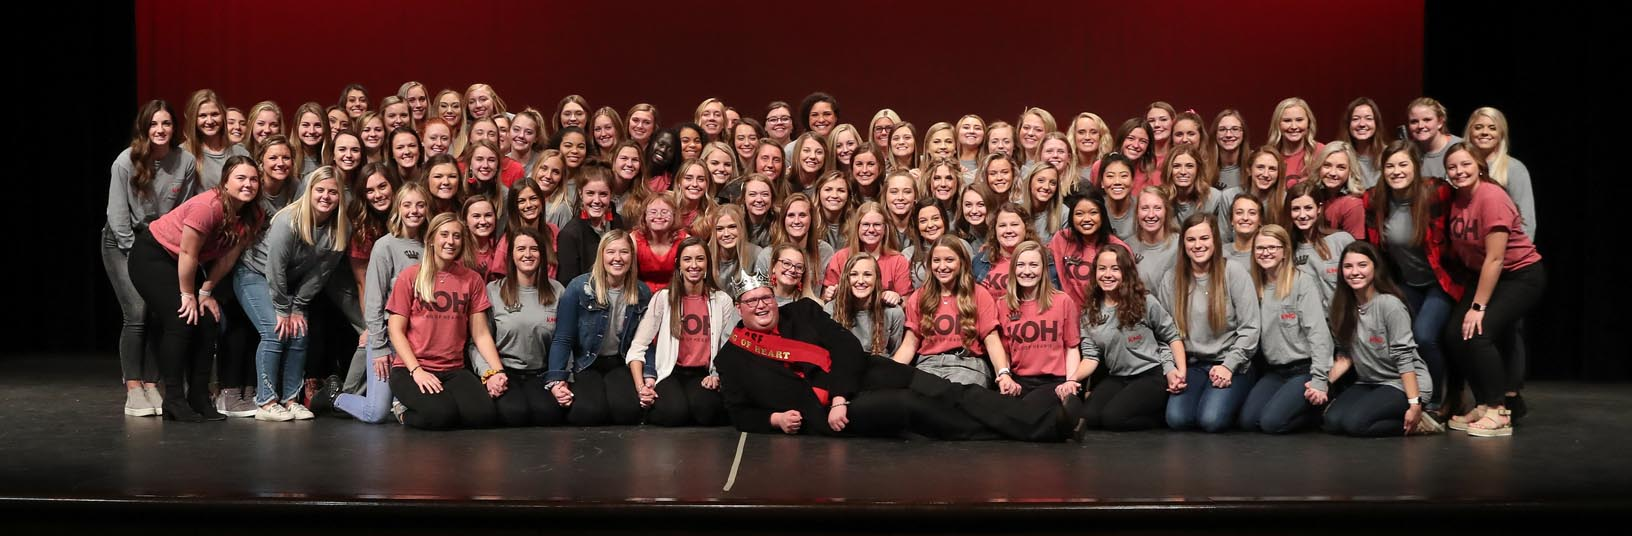 Adam Schultis poses with members of the Alpha Phi sorority after he was named Mr. King of Hearts during Thursday evening's fundraiser at Kearney High School. (Photos by Corbey R. Dorsey, UNK Communications)